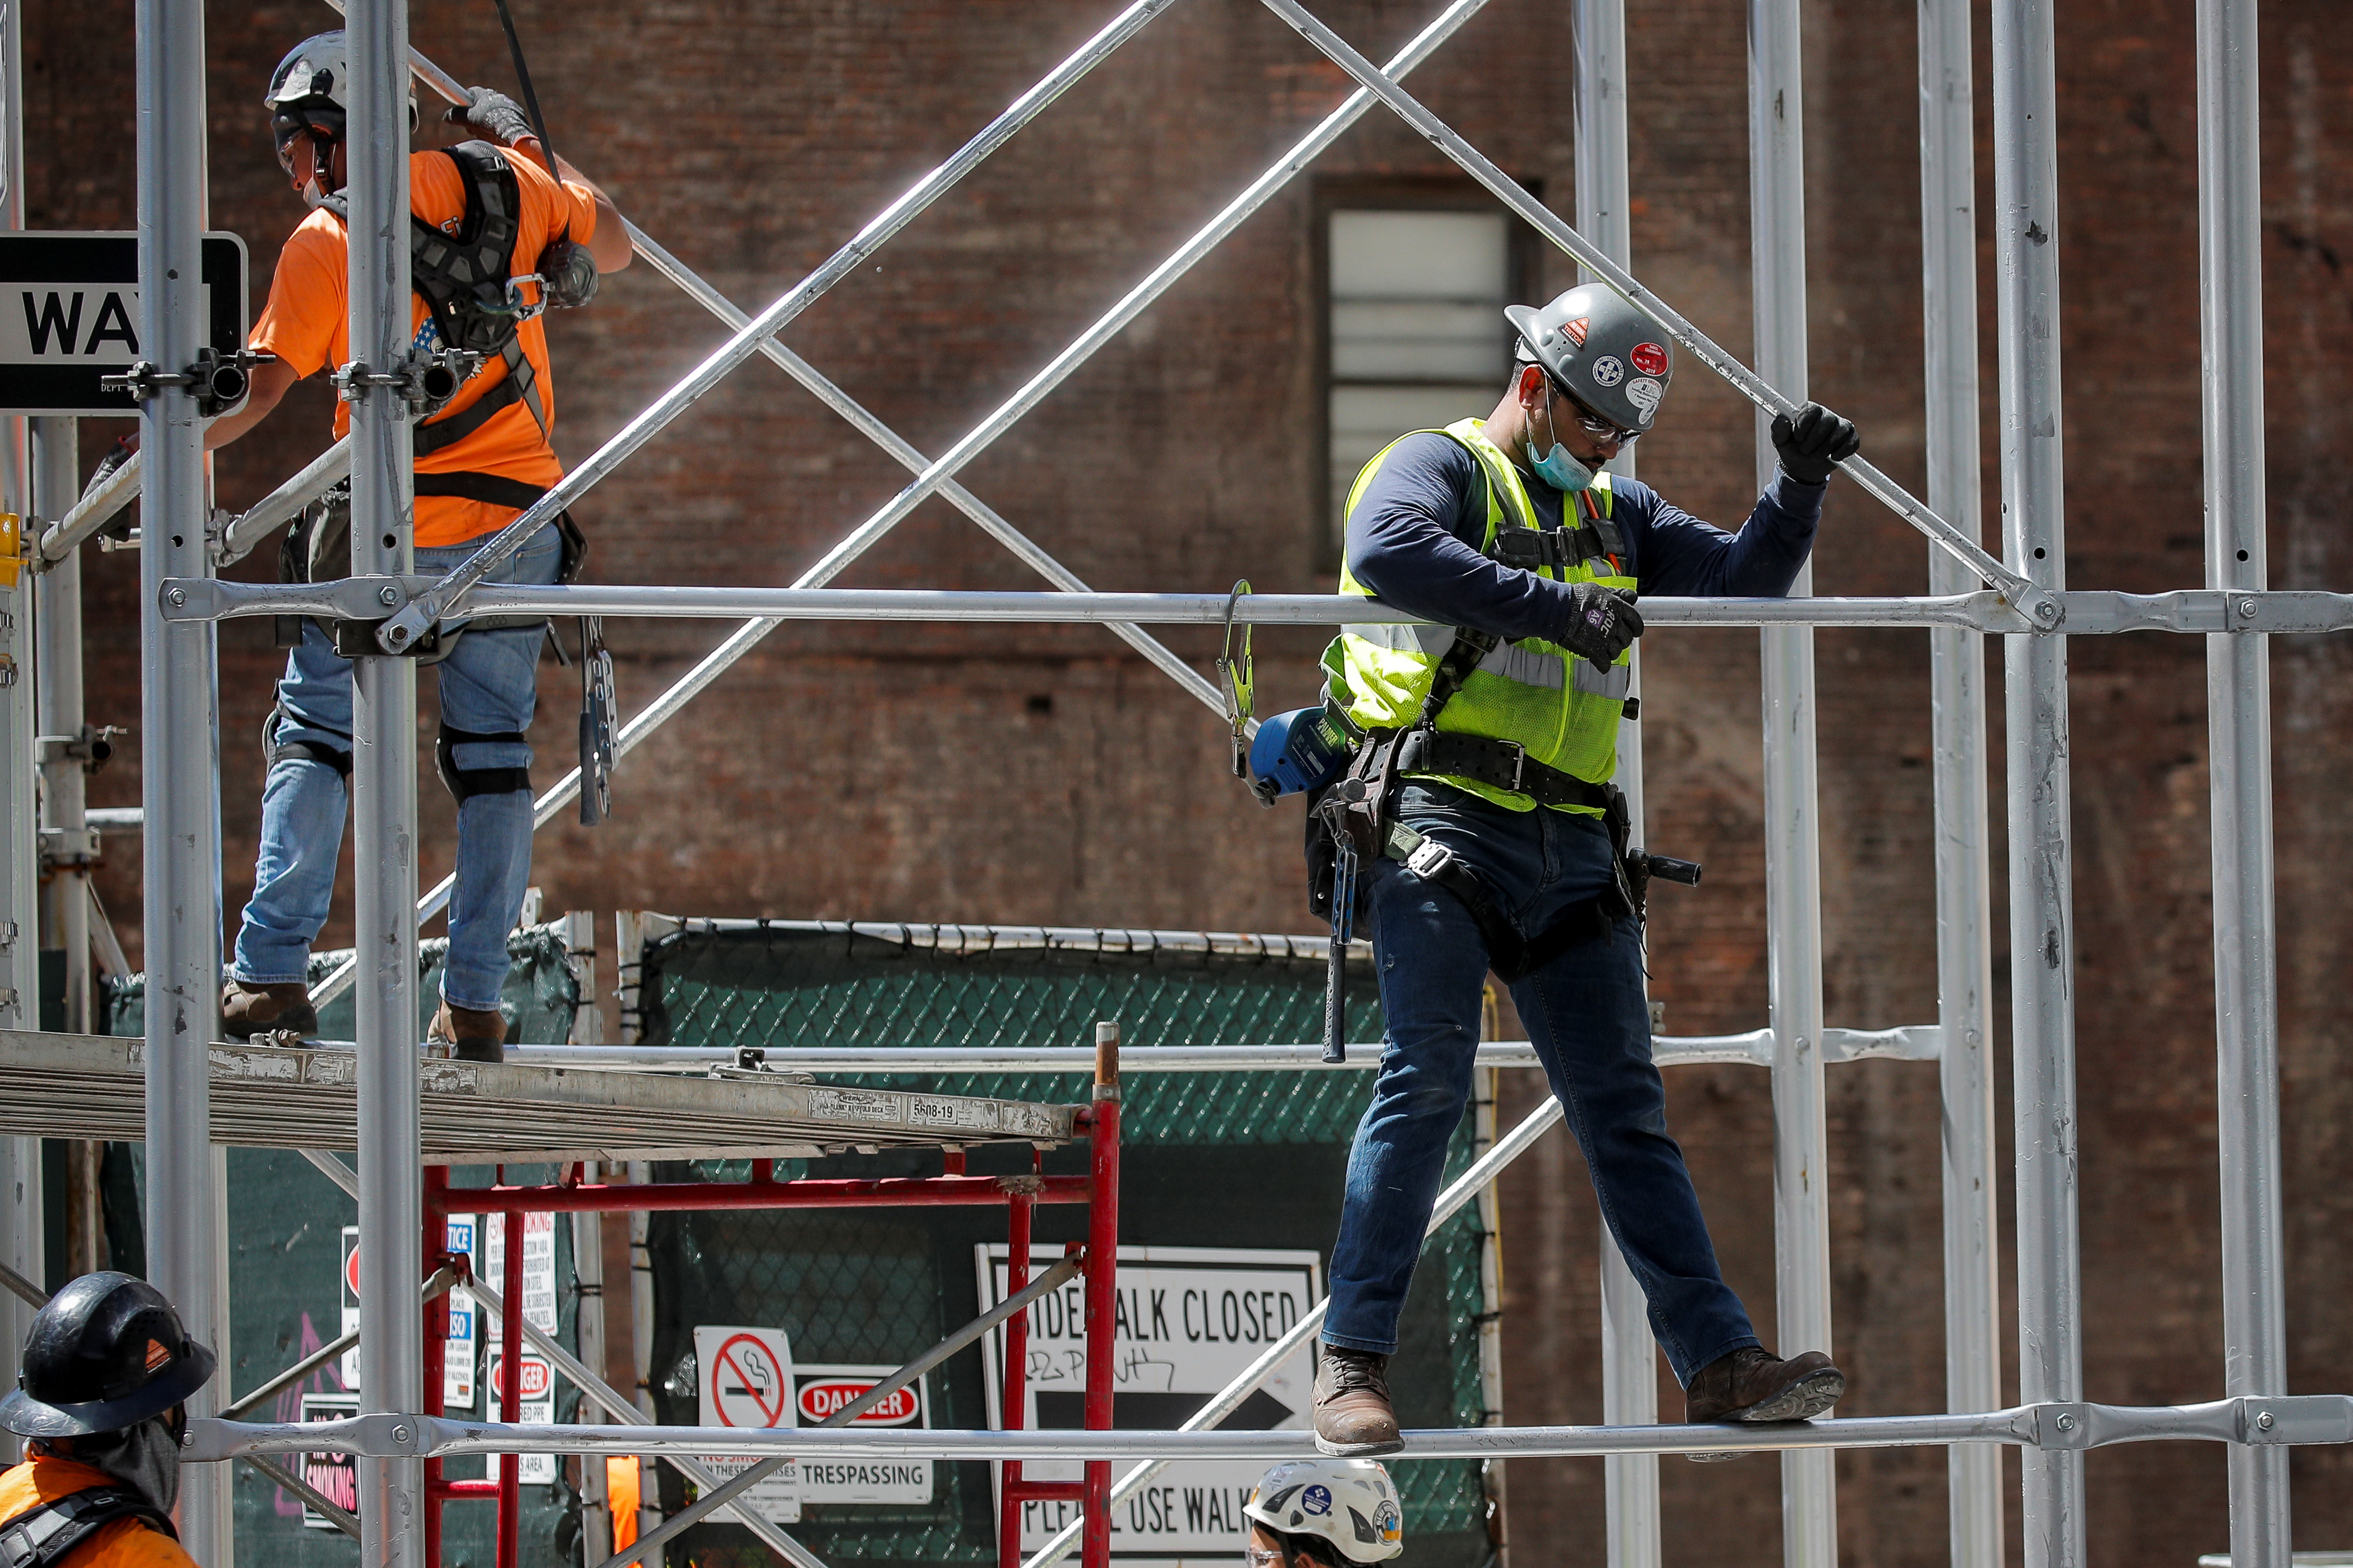 Construction workers assemble a scaffold at a job site, as phase one of reopening after lockdown begins, during the outbreak of the coronavirus disease (COVID-19) in New York City, New York, U.S., June 8, 2020. REUTERS/Brendan McDermid